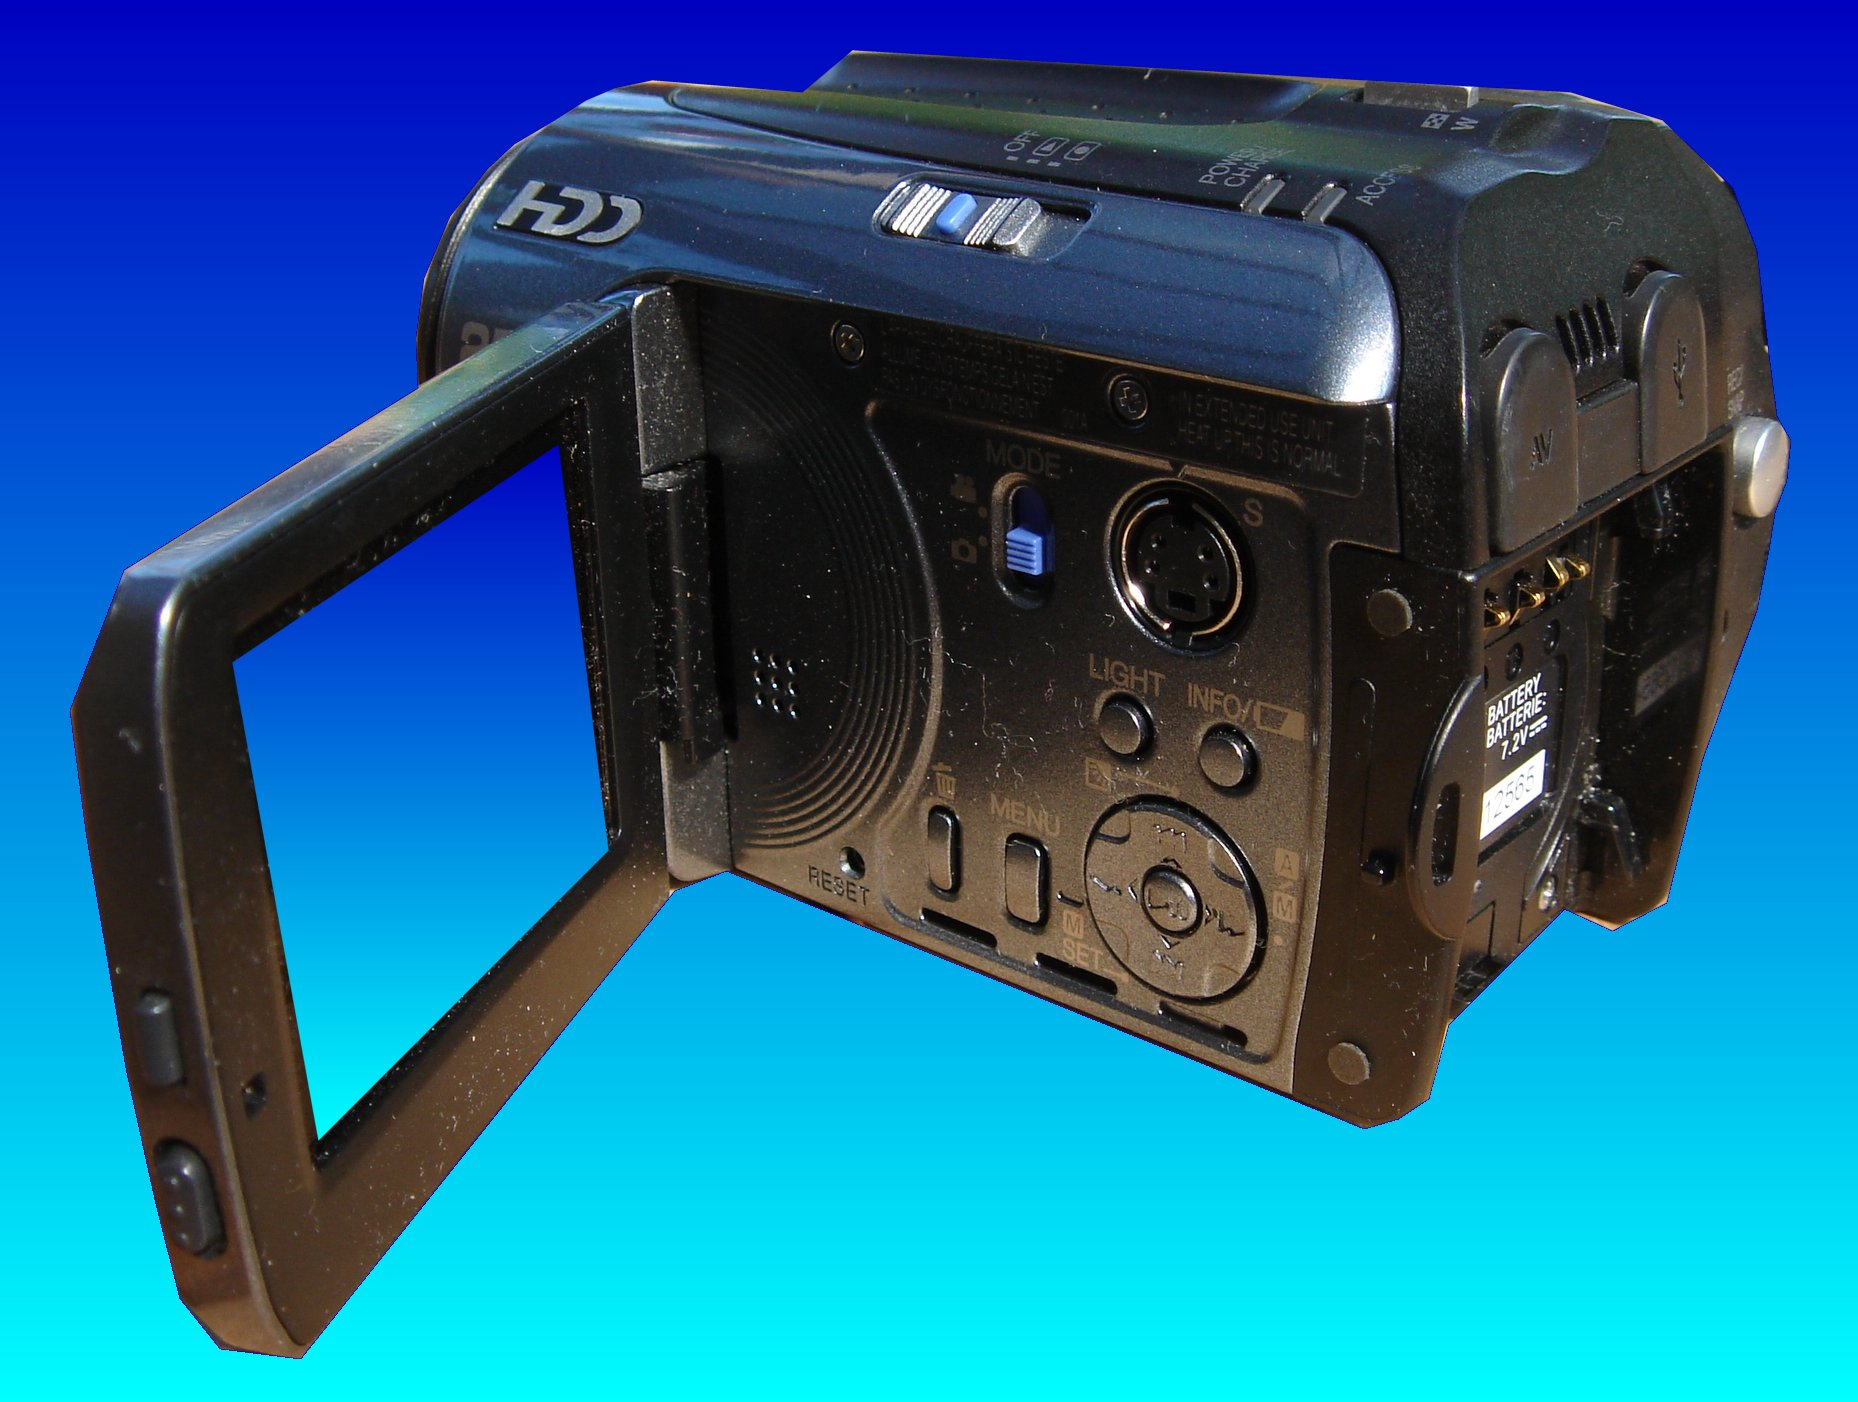 This JVC camcorder model GZ-MG77EK is ready to undergo video recovery.